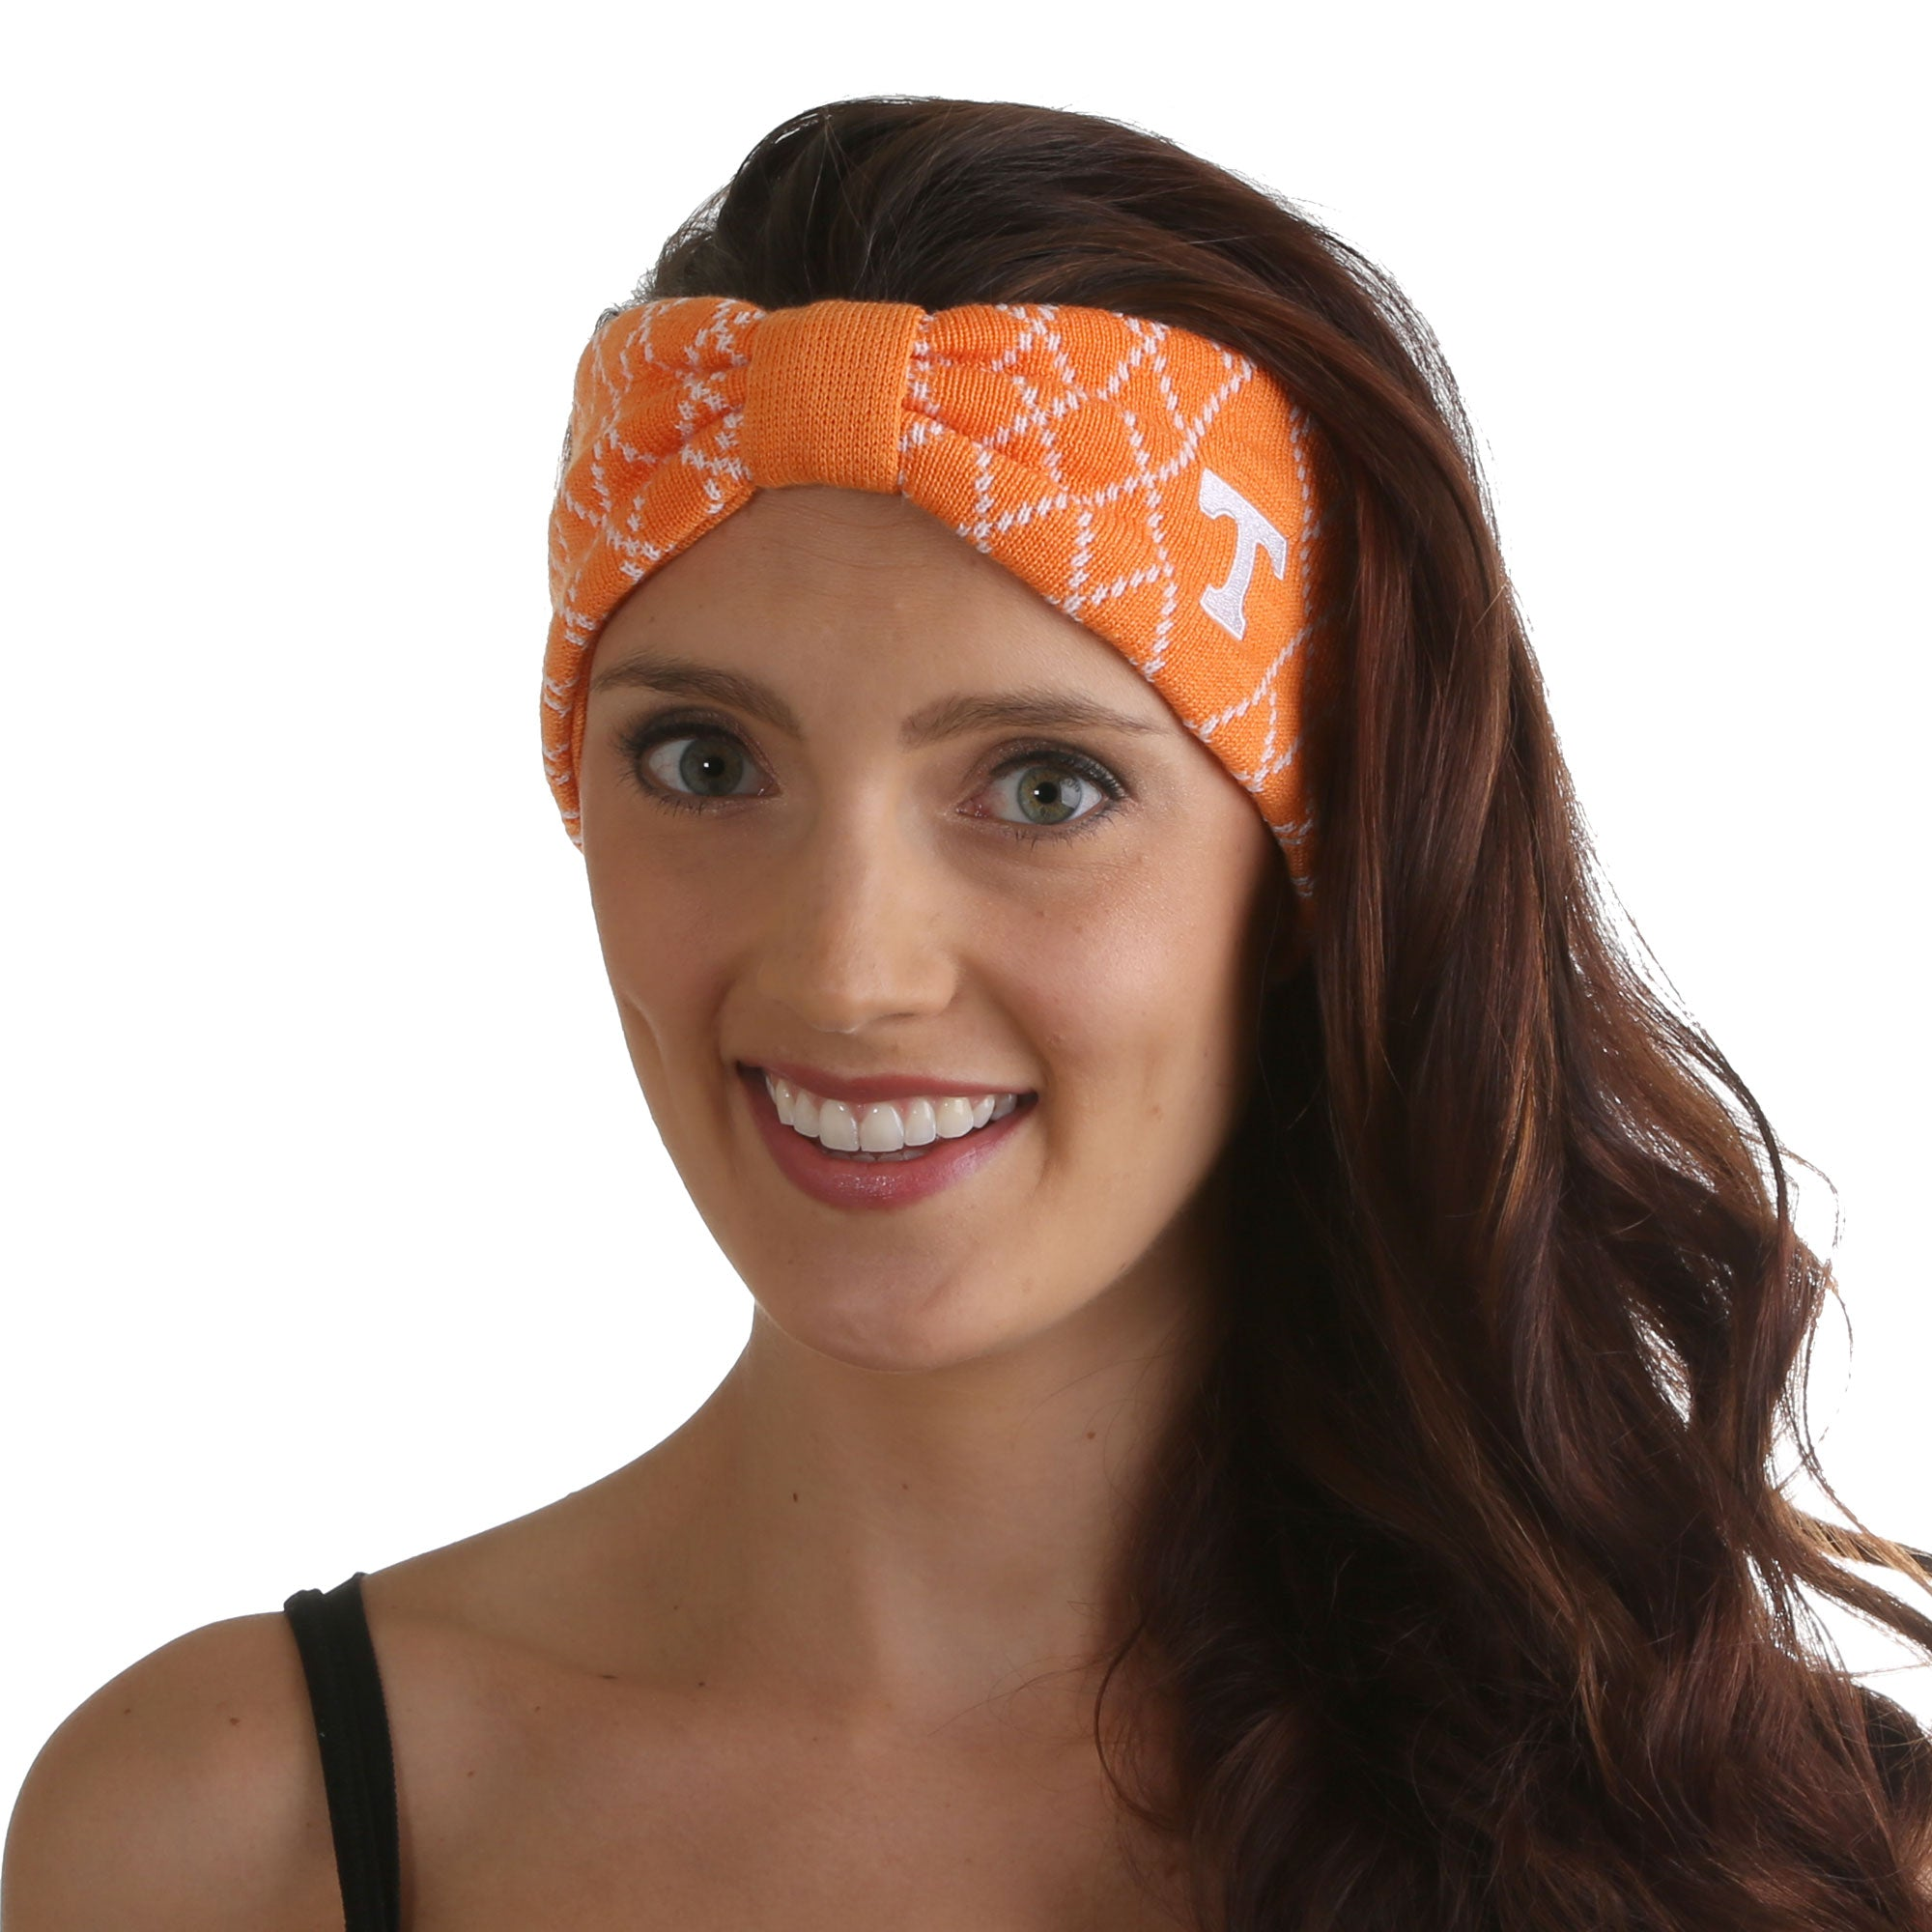 TENNESSEE VOLUNTEERS KNIT HEADBAND